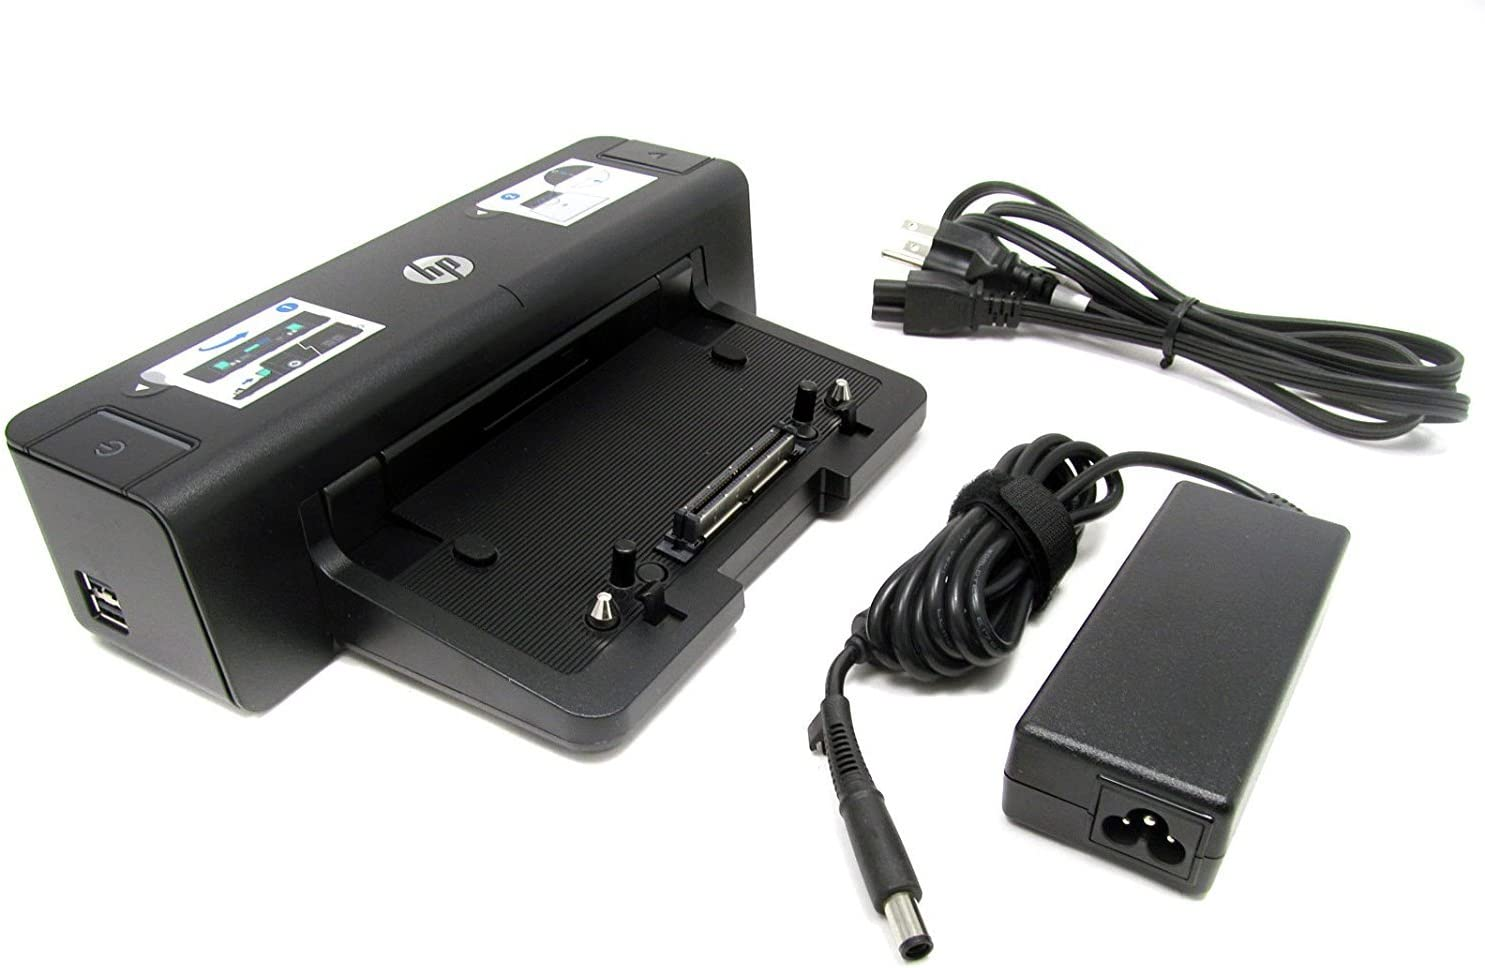 HP 90W Docking Station A7E32UT#ABA for Notebook - Proprietary Interface - 4 x USB Ports - Network (RJ-45) - DVI - VGA - DisplayPort